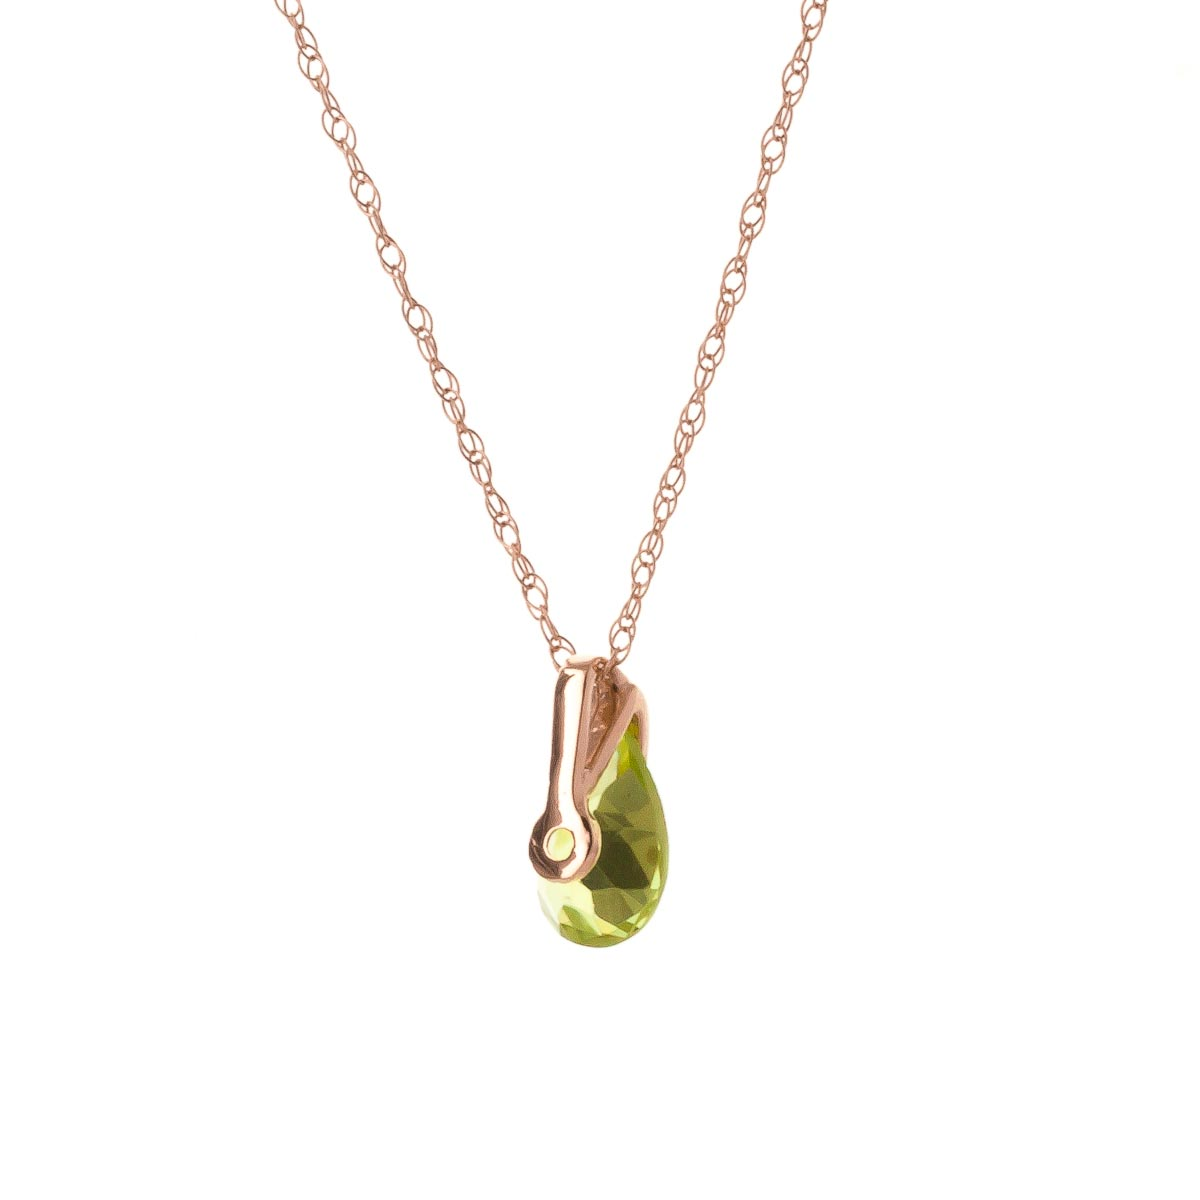 Pear Cut Peridot Pendant Necklace 0.68ct in 9ct Rose Gold